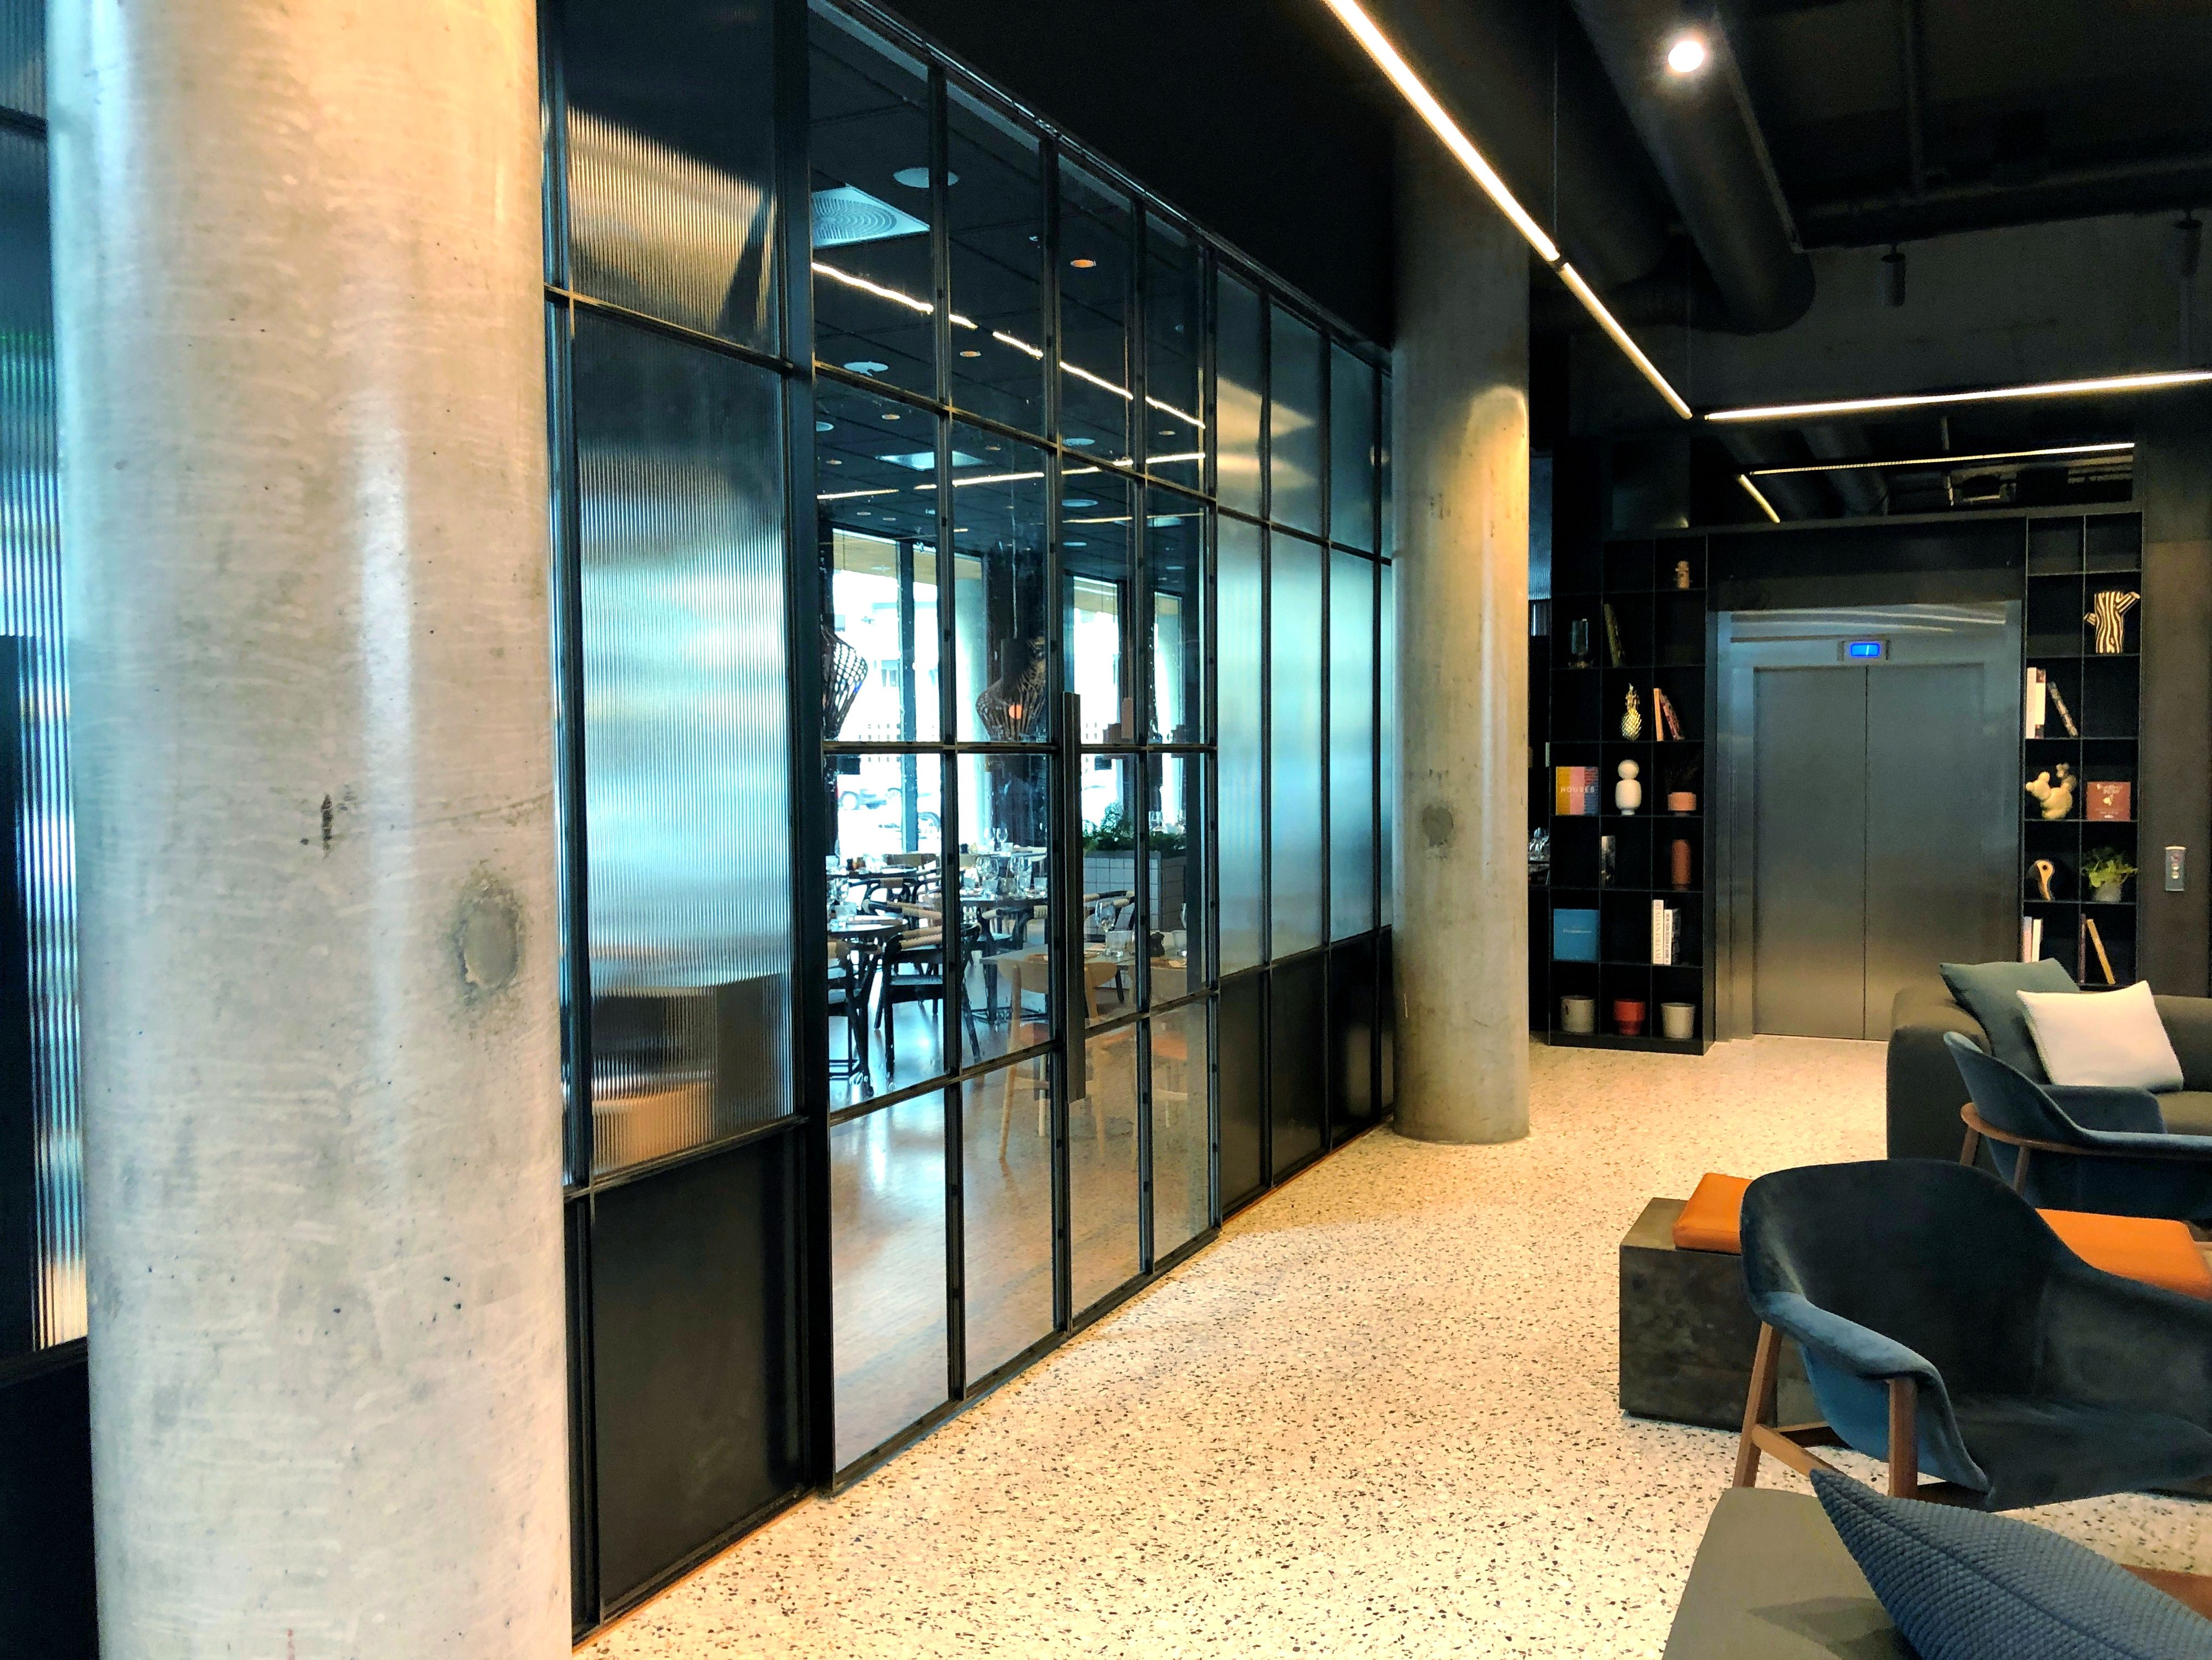 Glass and steel walls with double sliding doors in the midle…